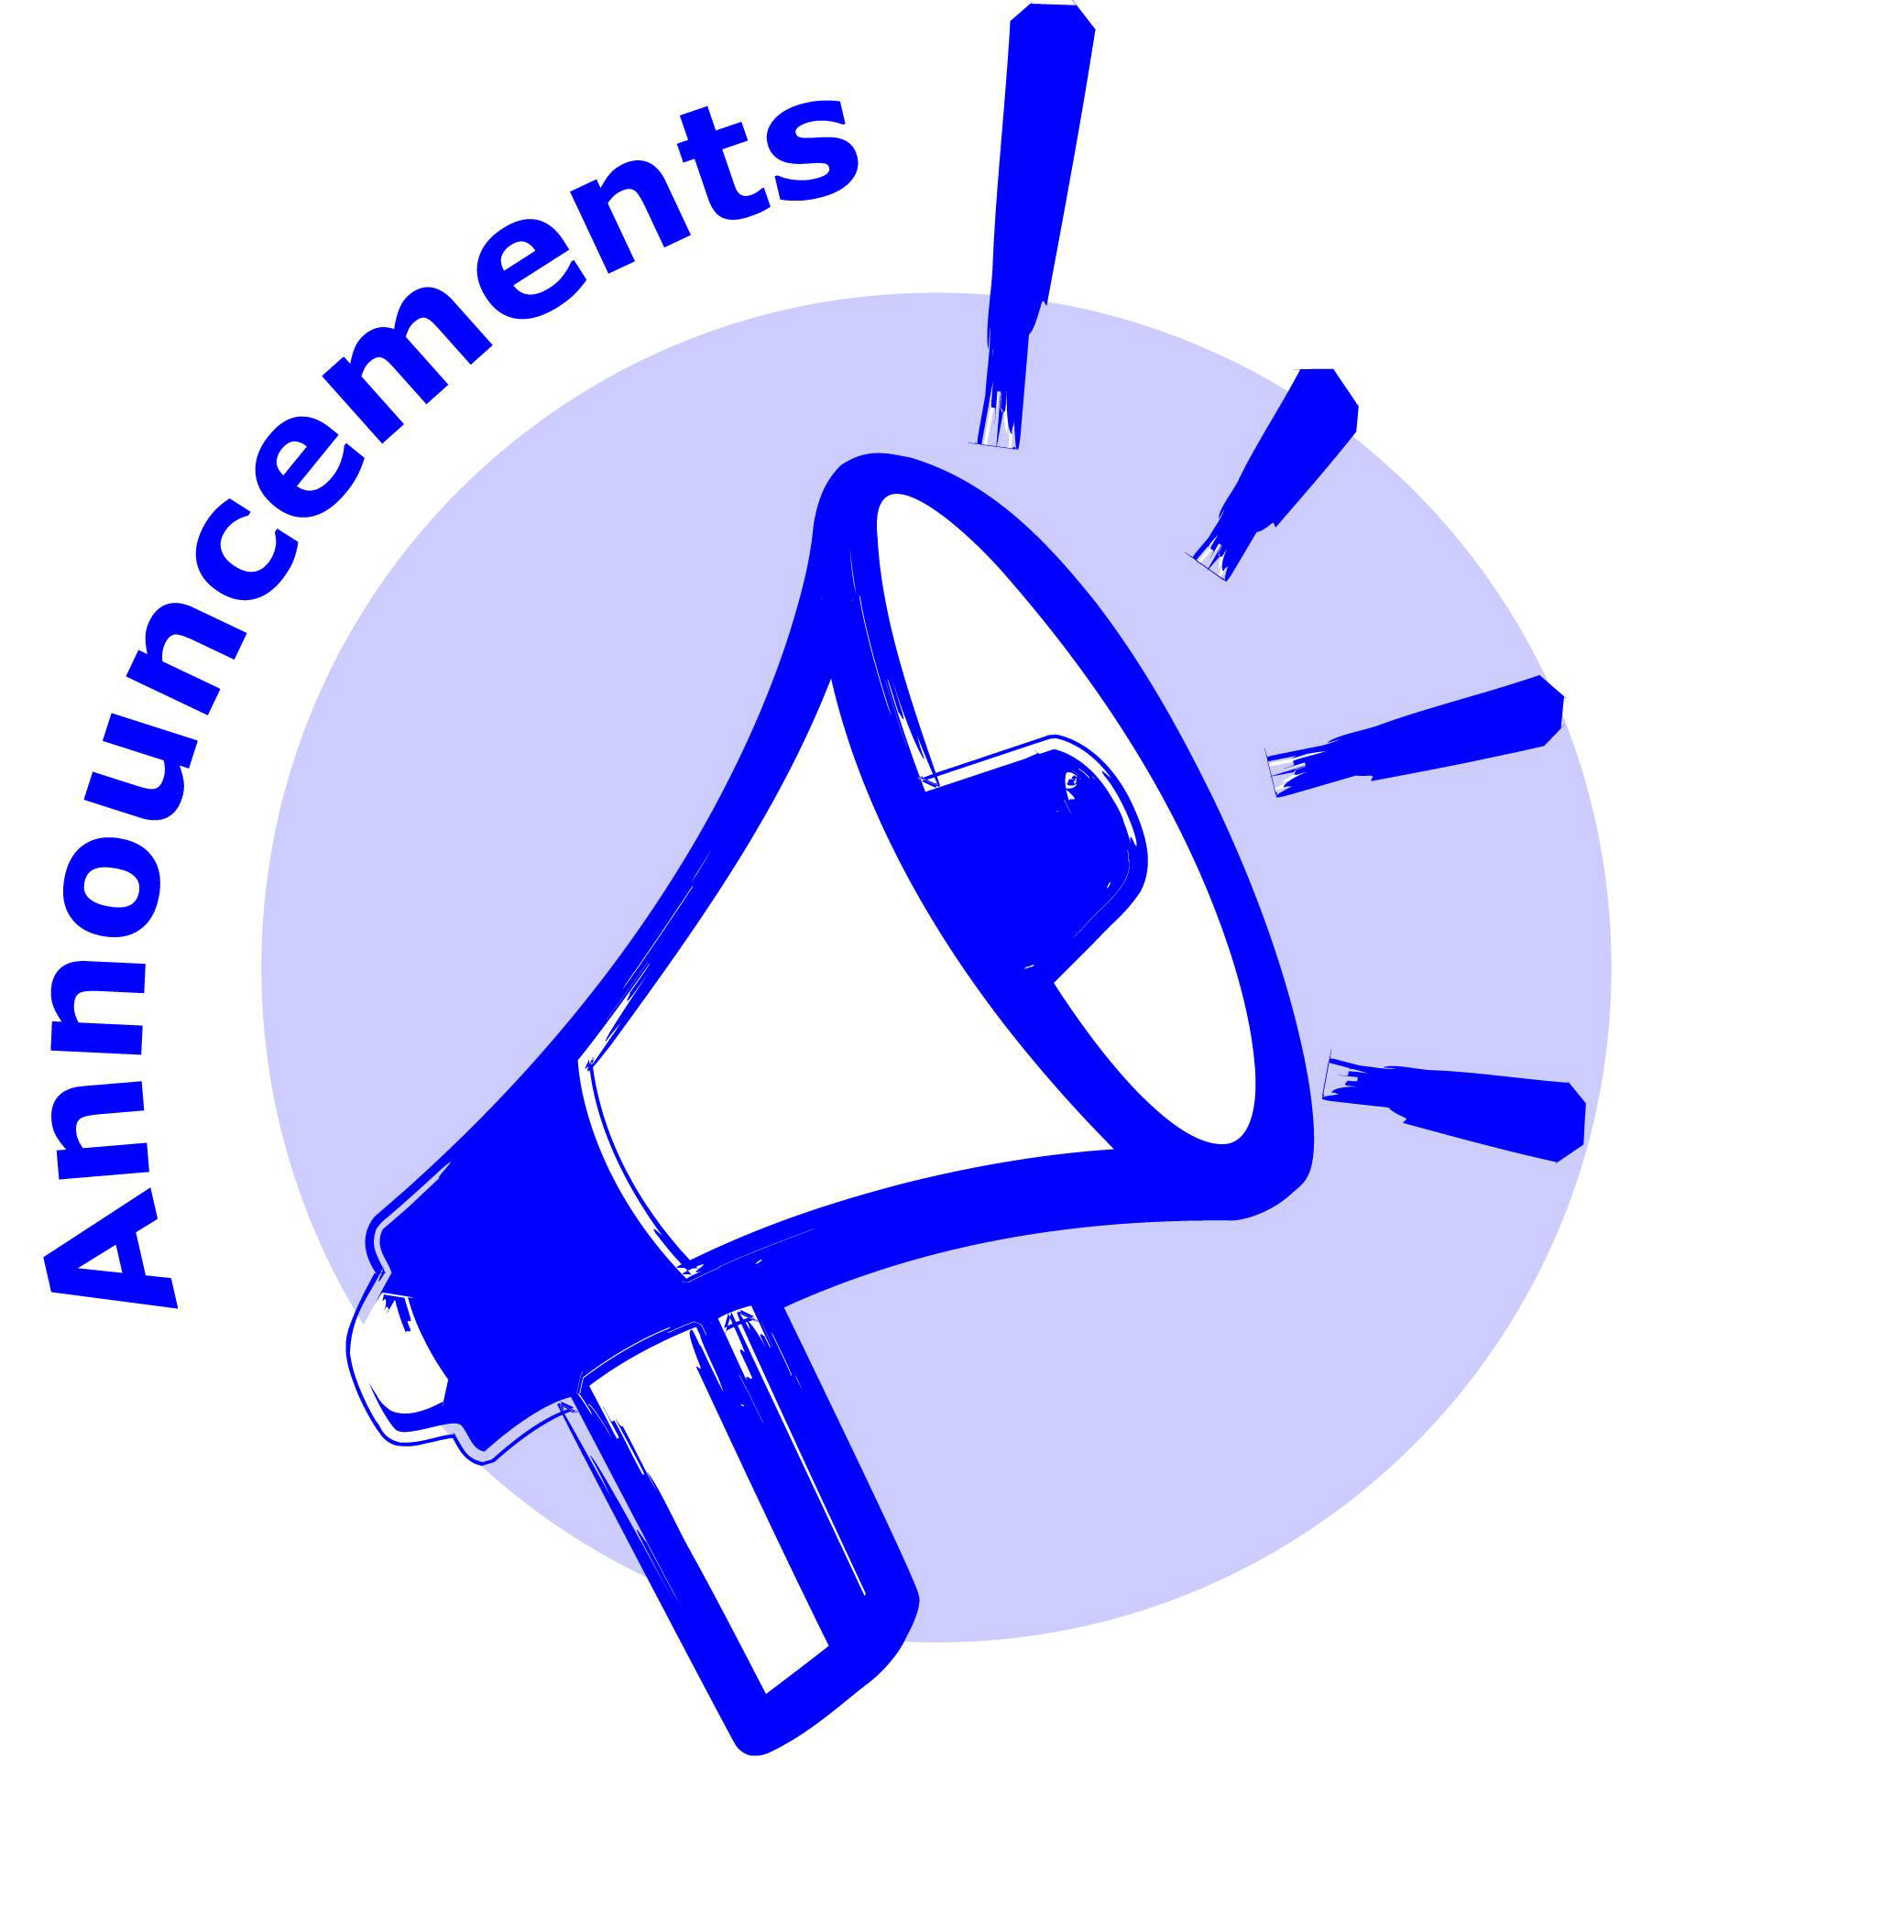 Image of announcement clipart 0 announcements clipart 2 image